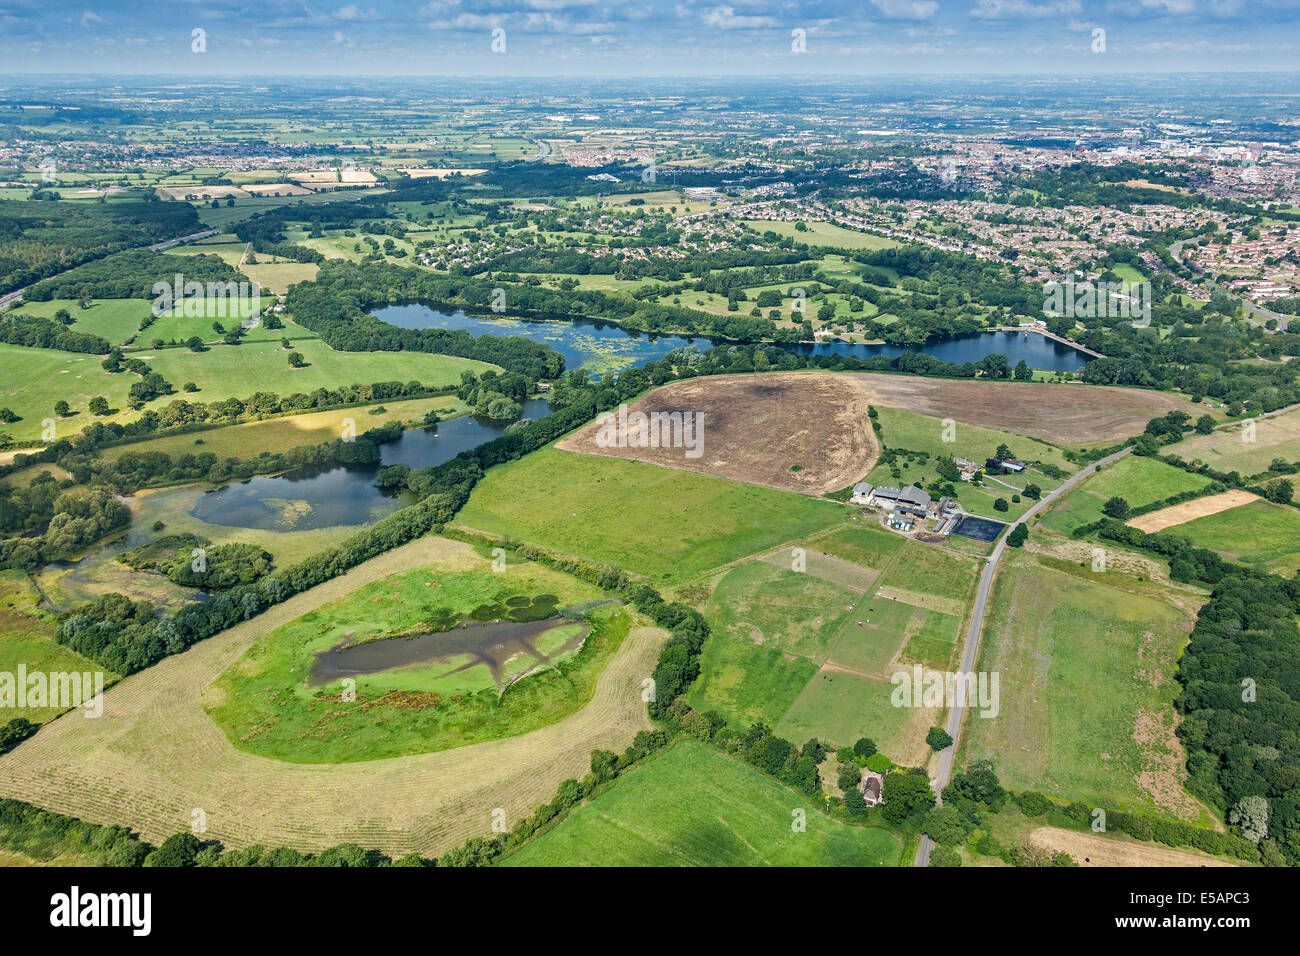 Aerial view of Coate Water Country Park looking towards ...